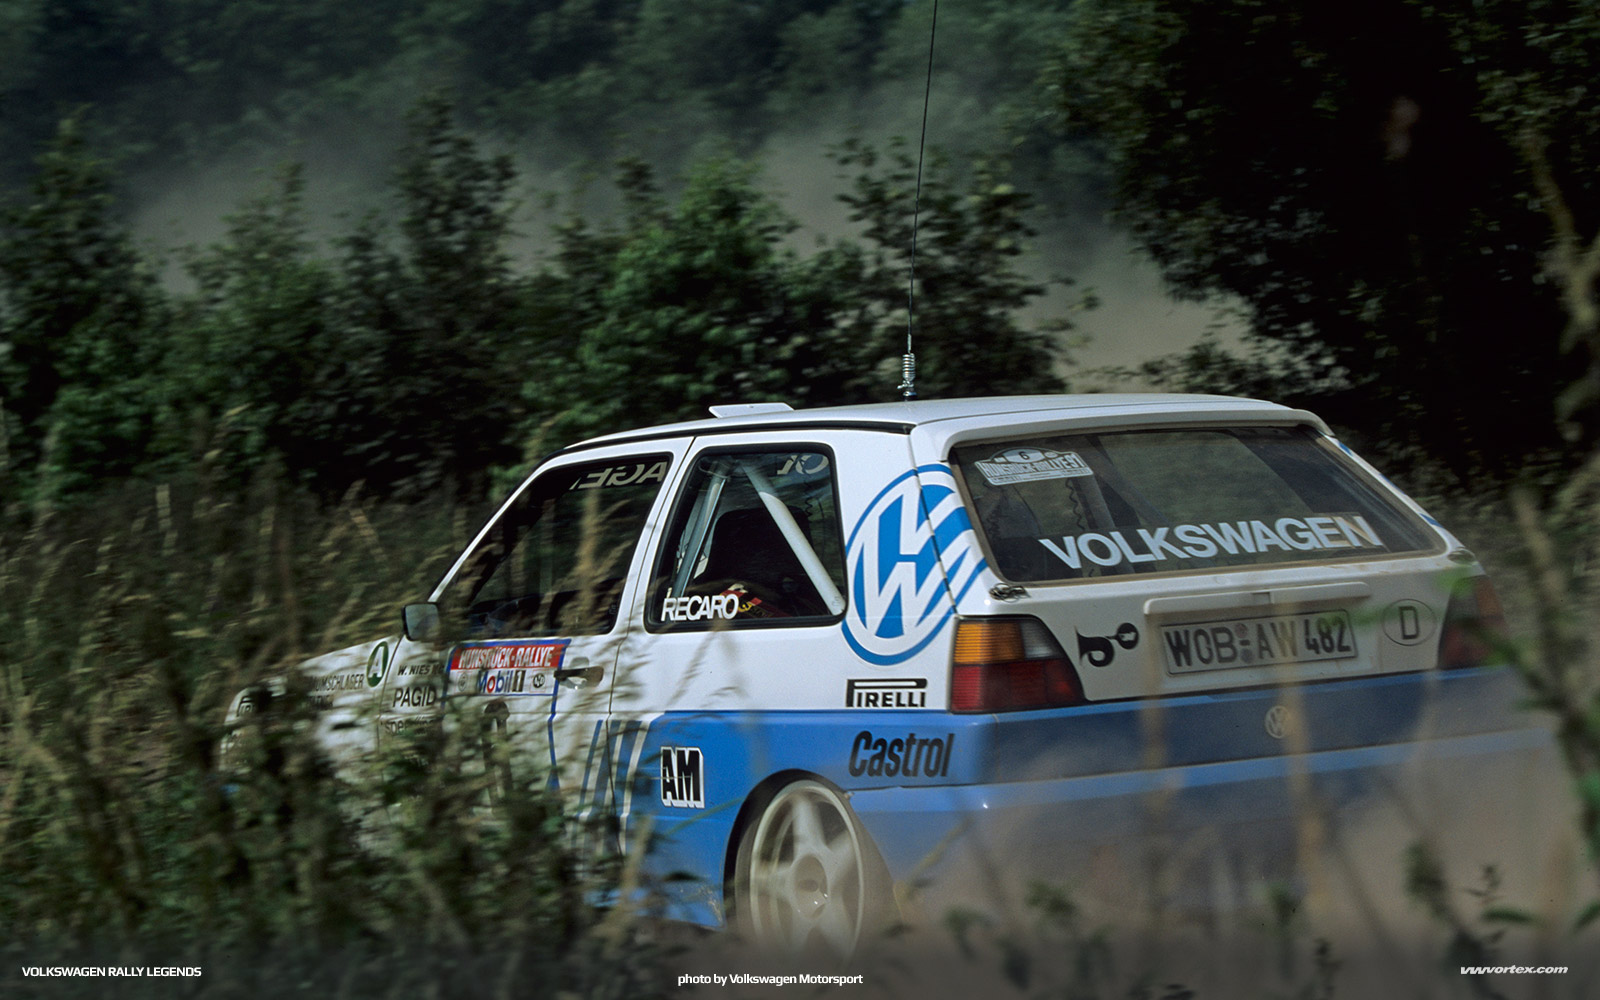 volkswagen-rally-legends-371